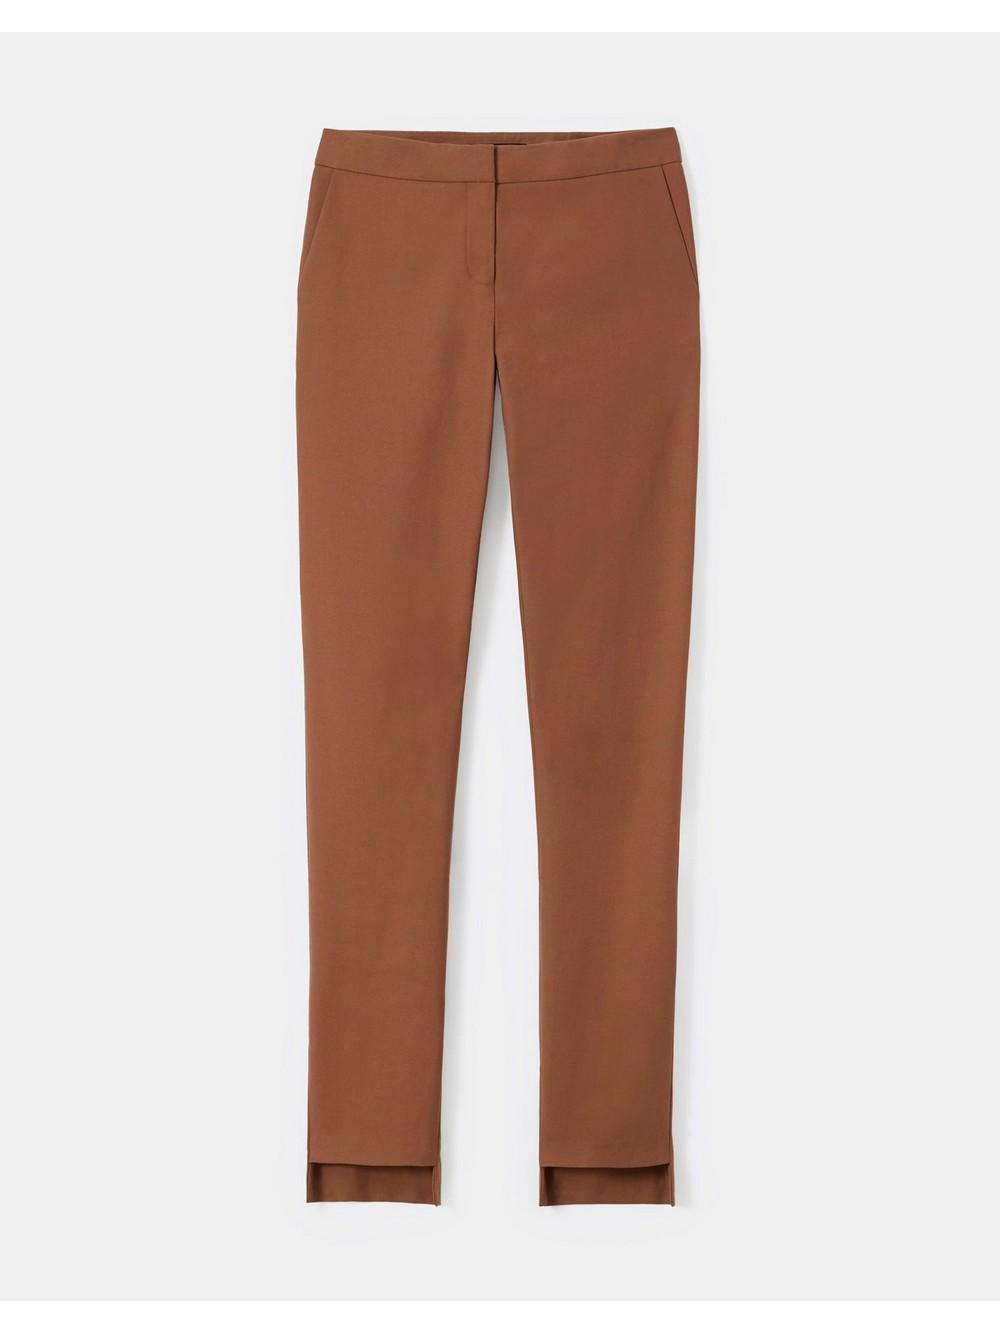 Manhattan Slim Pant